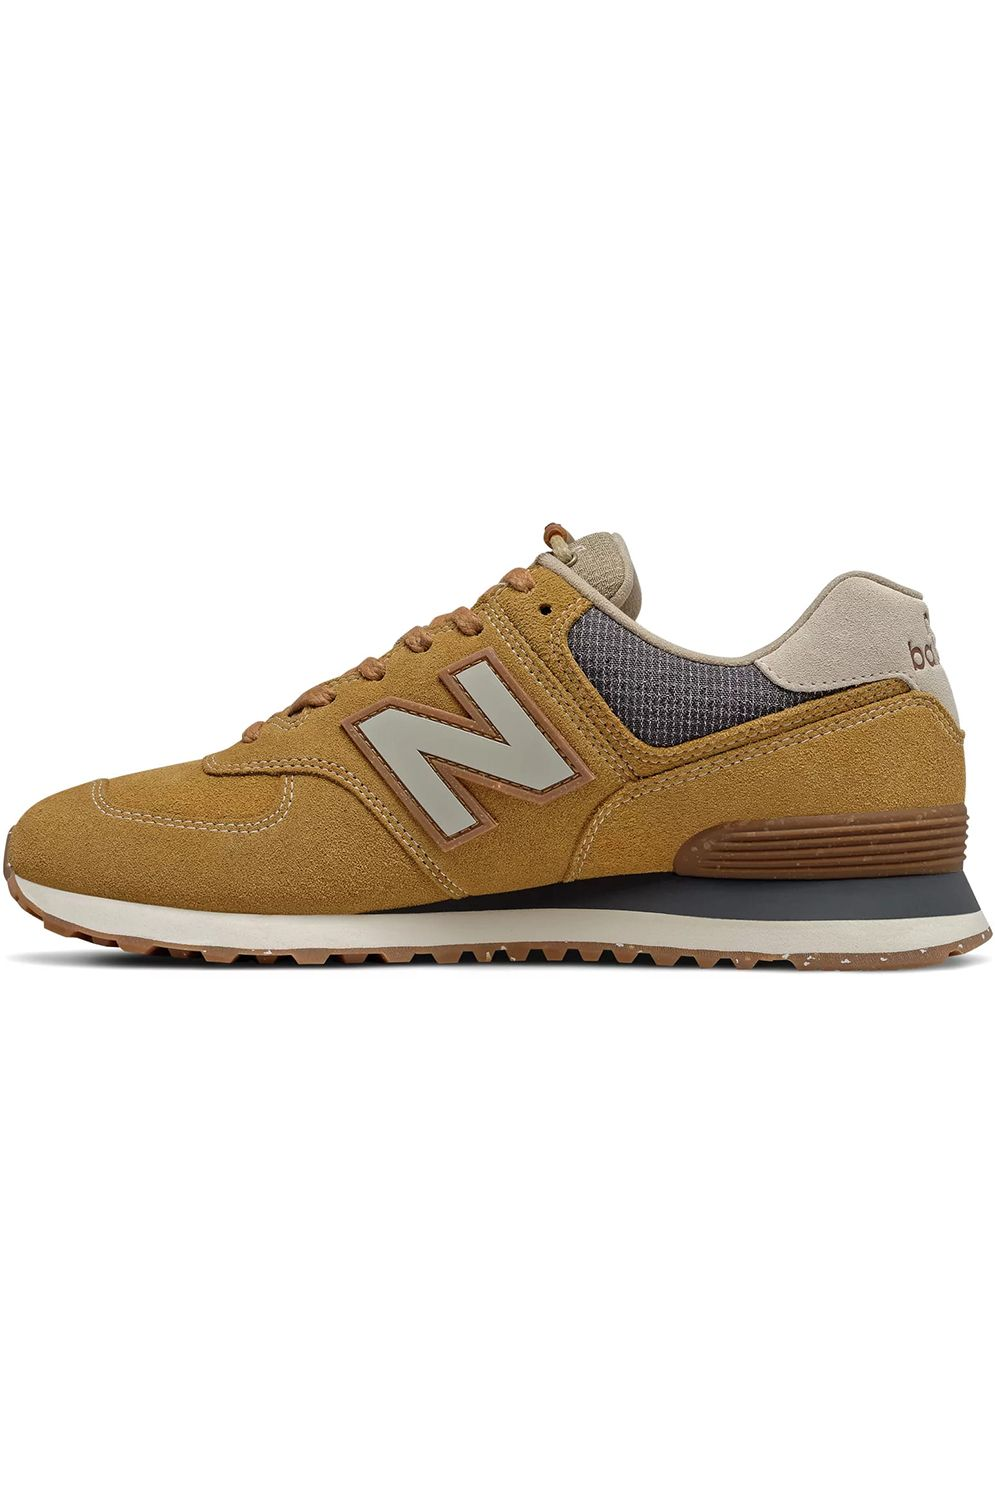 Tenis New Balance 574 V2 CLASSIC Brown